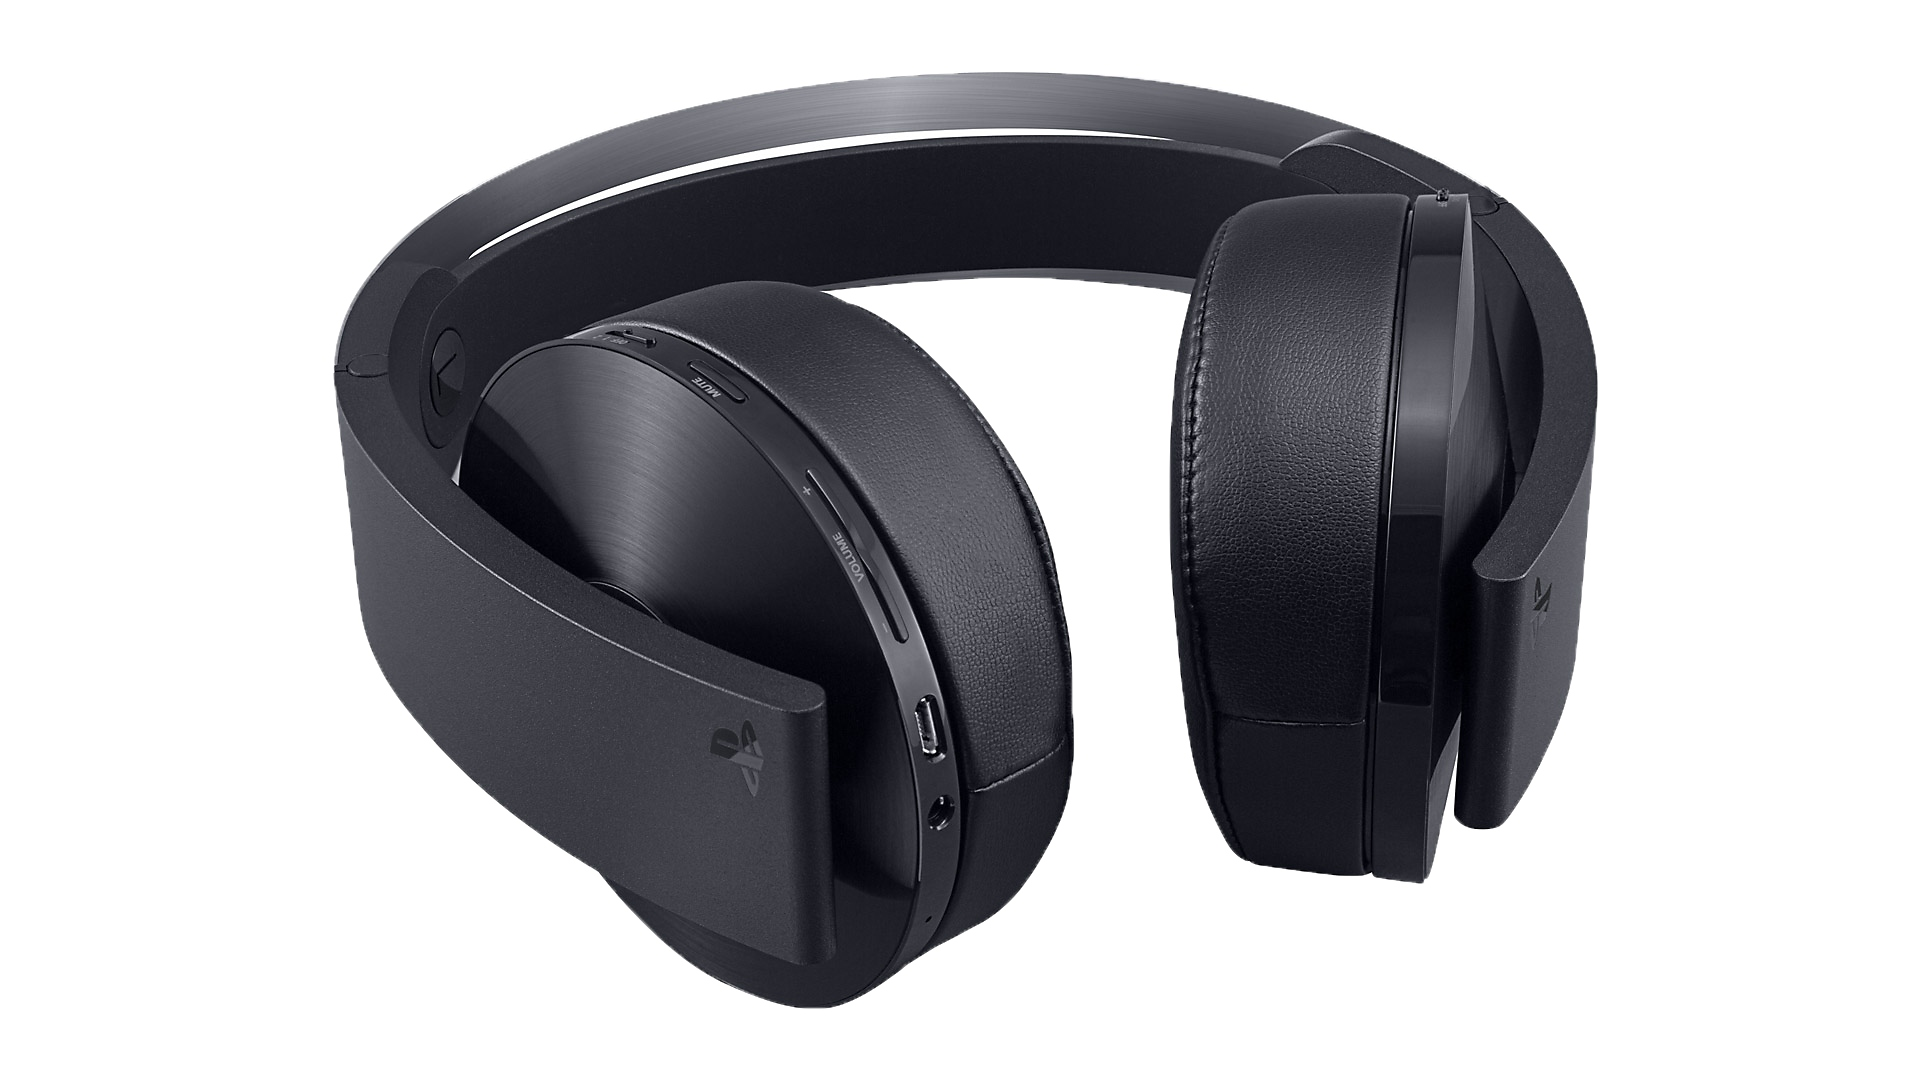 PS wireless headset